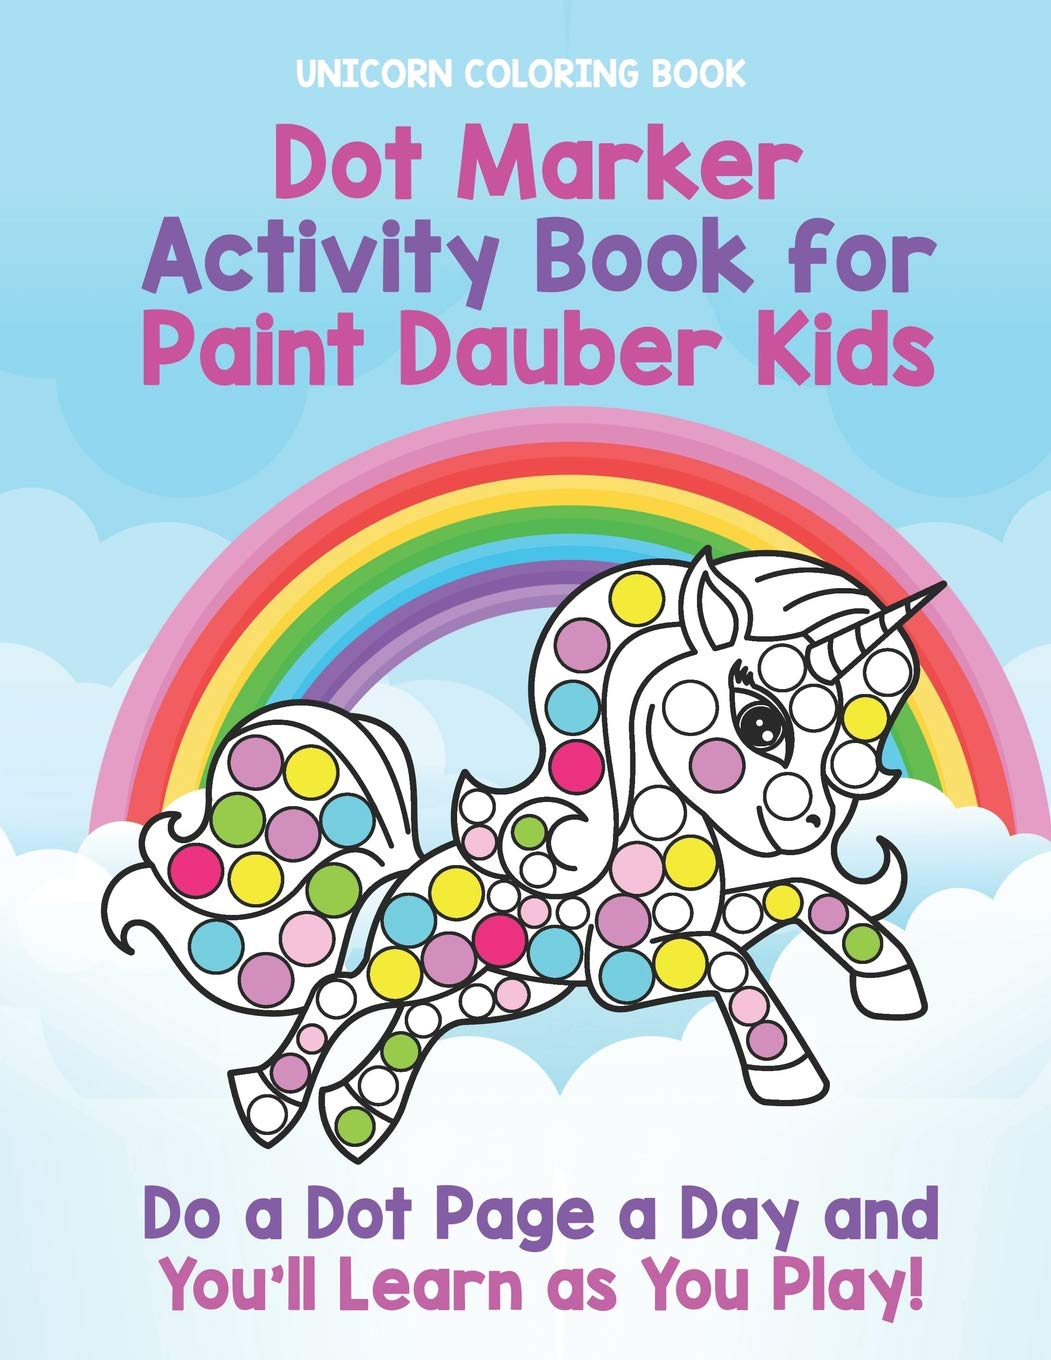 Unicorn Coloring Book Dot Marker Activity Book For Paint